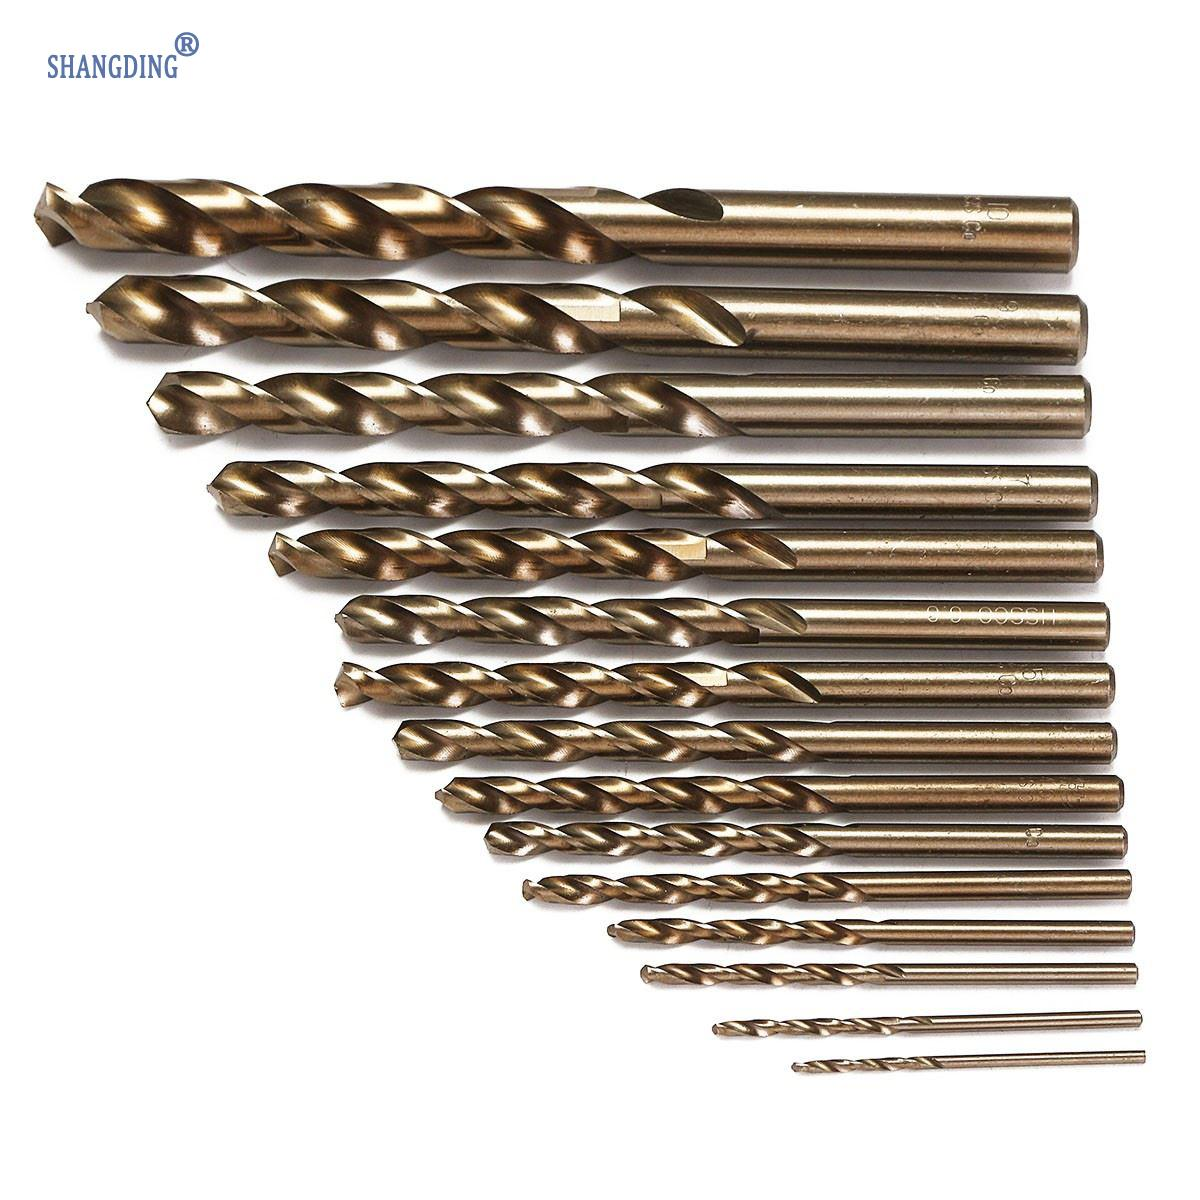 Newest 15pcs/set HSS-CO 1.5-10mm High Speed Steel M35 Cobalt Twist Drill Bit 40-133mm Length Wood Metal Drilling Top Quality 13pcs lot hss high speed steel drill bit set 1 4 hex shank 1 5 6 5mm free shipping hss twist drill bits set for power tools